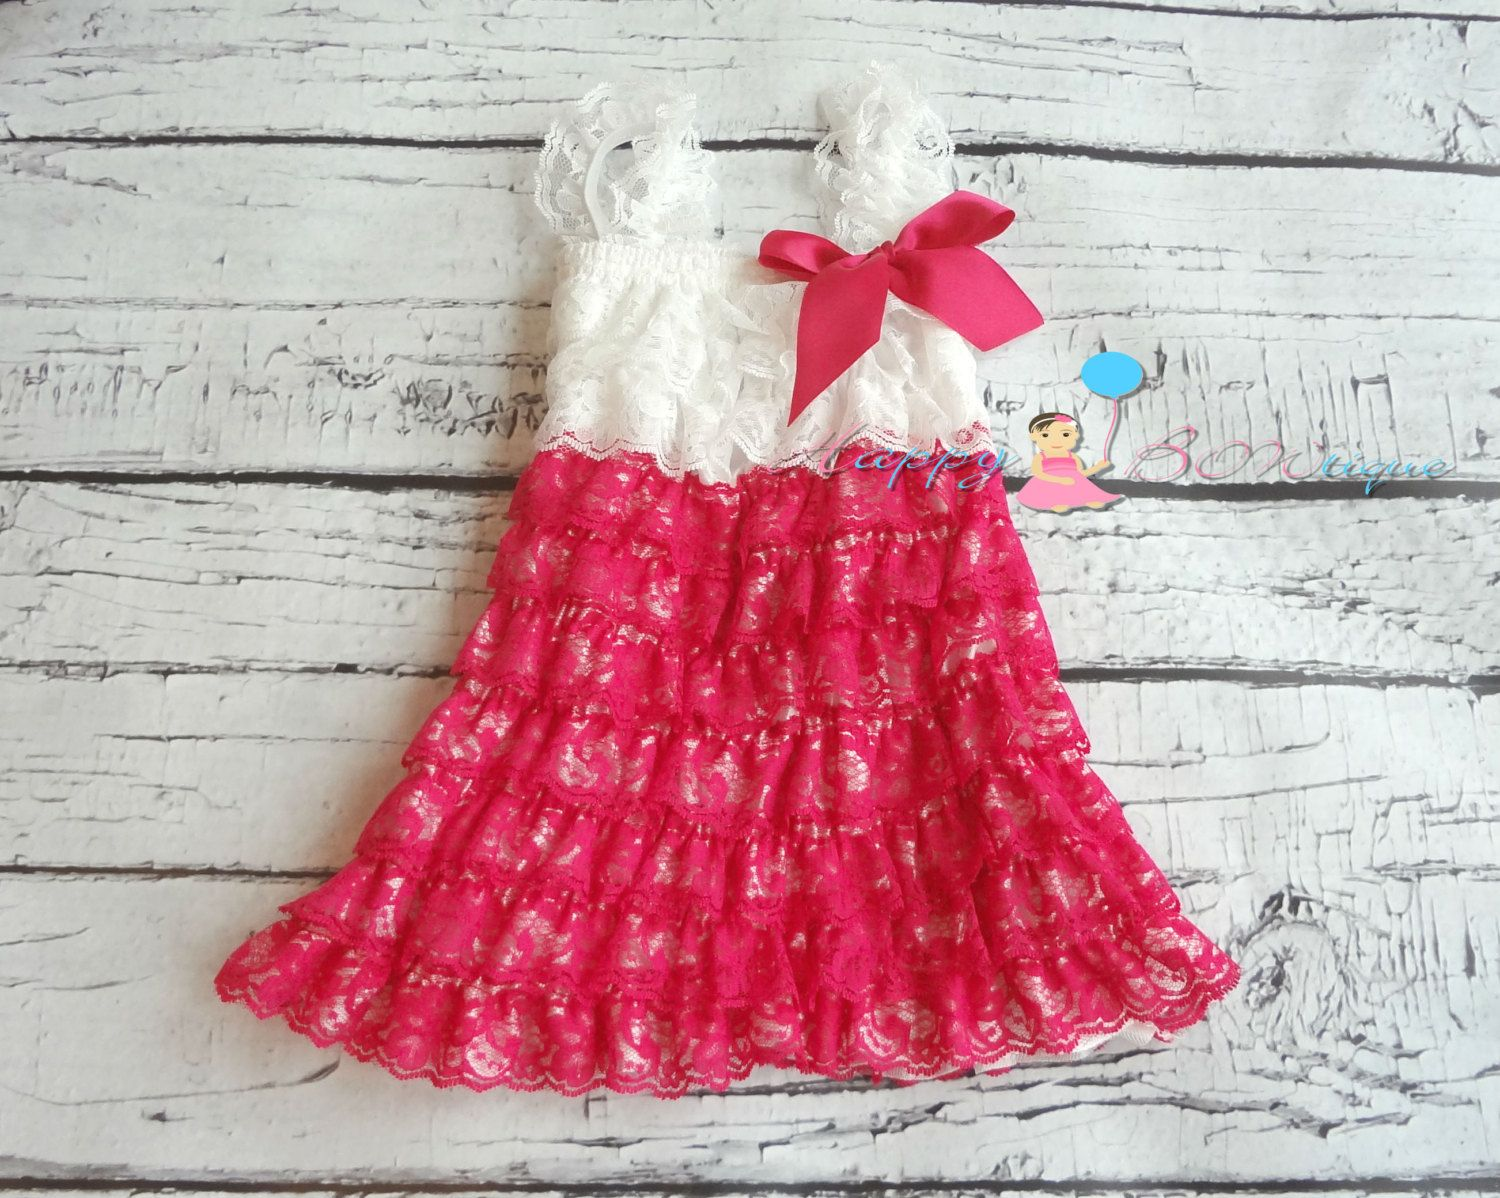 Hot Pink and White Lace Dress baby girls dress by HappyBOWtique, $26.99